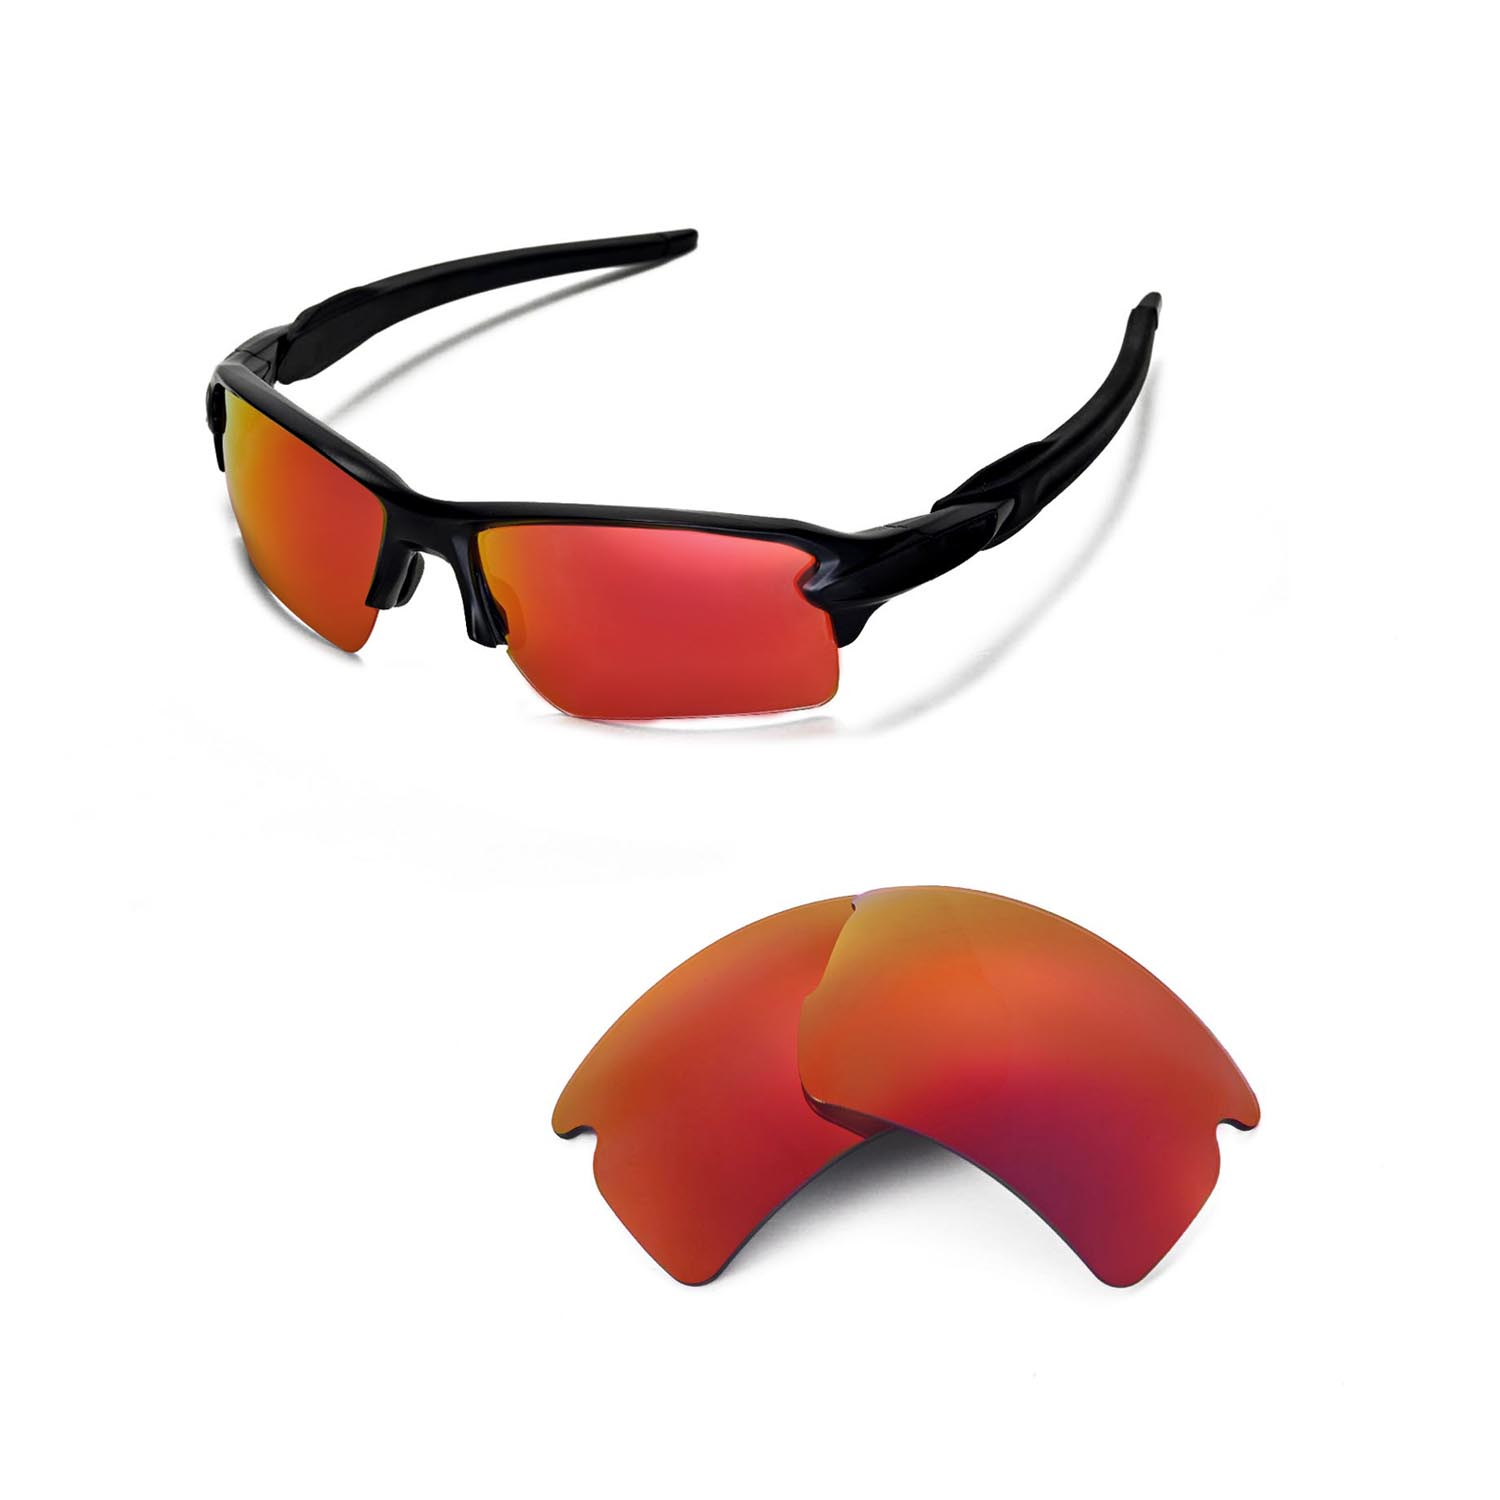 e6b552c5e3b77 Details about New Walleva Fire Red ISARC Polarized Replacement Lenses For Oakley  Flak 2.0 XL